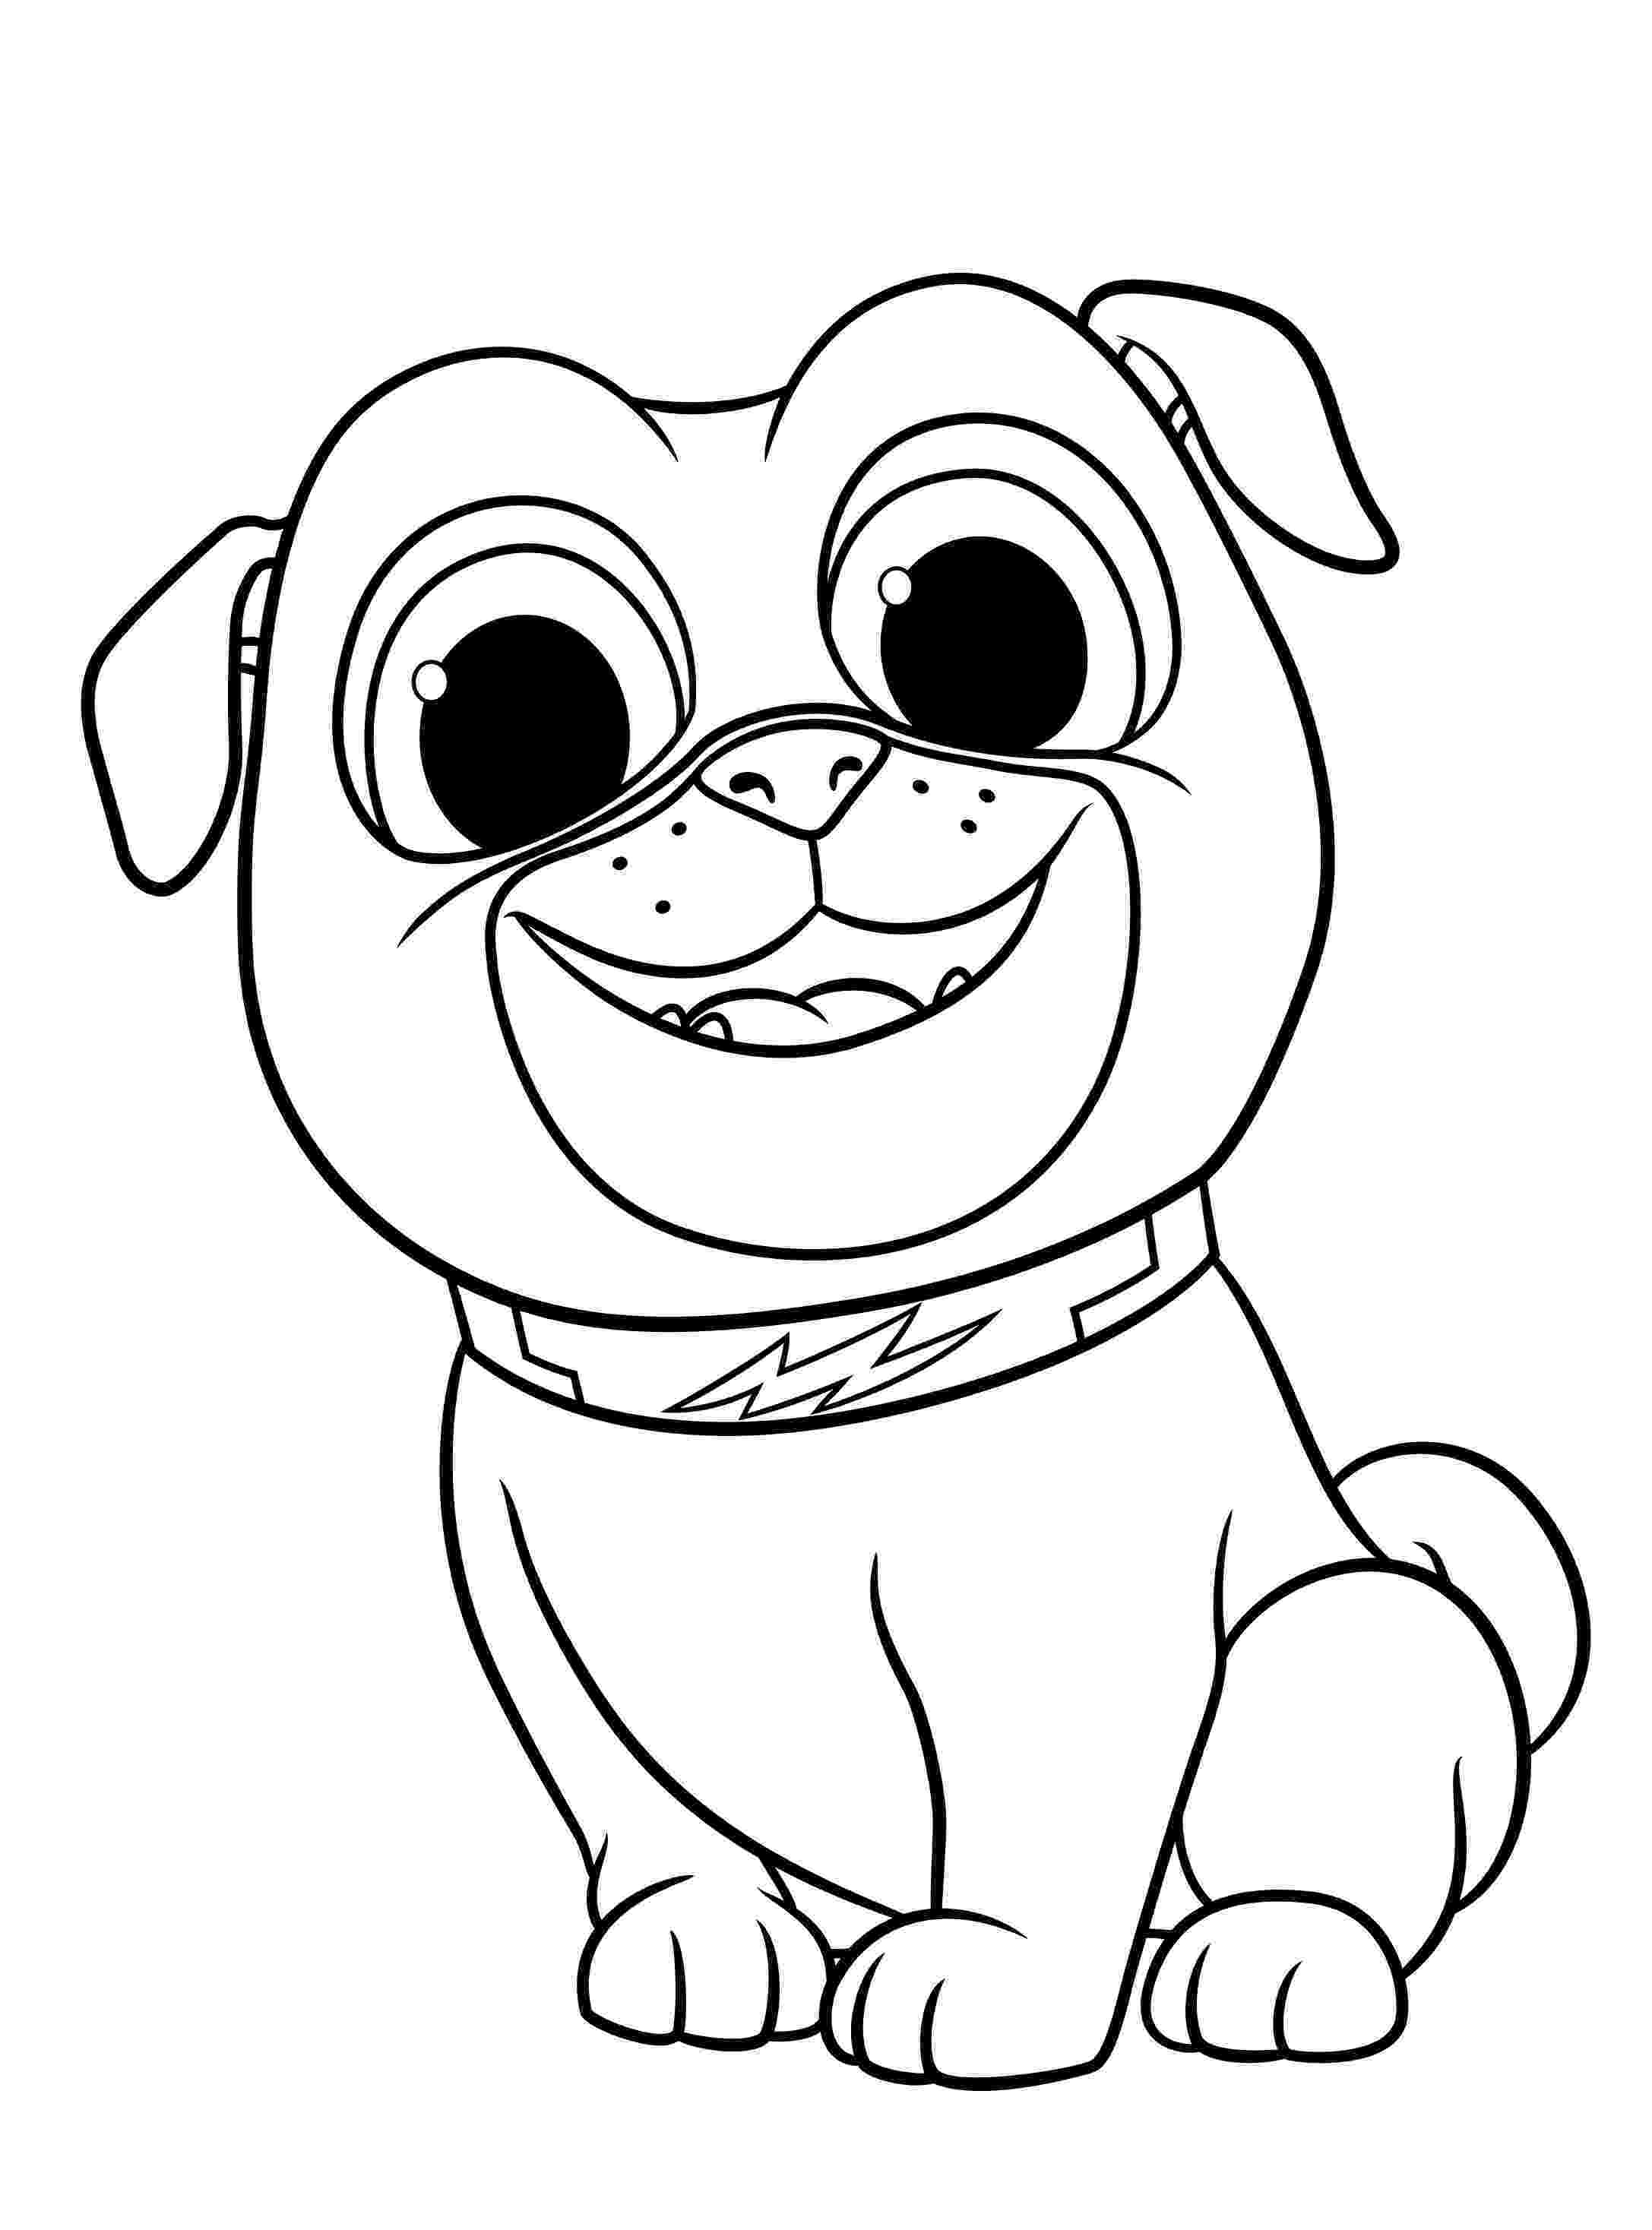 dog coloring sheets printable cat and dog coloring pages to download and print for free sheets dog coloring printable